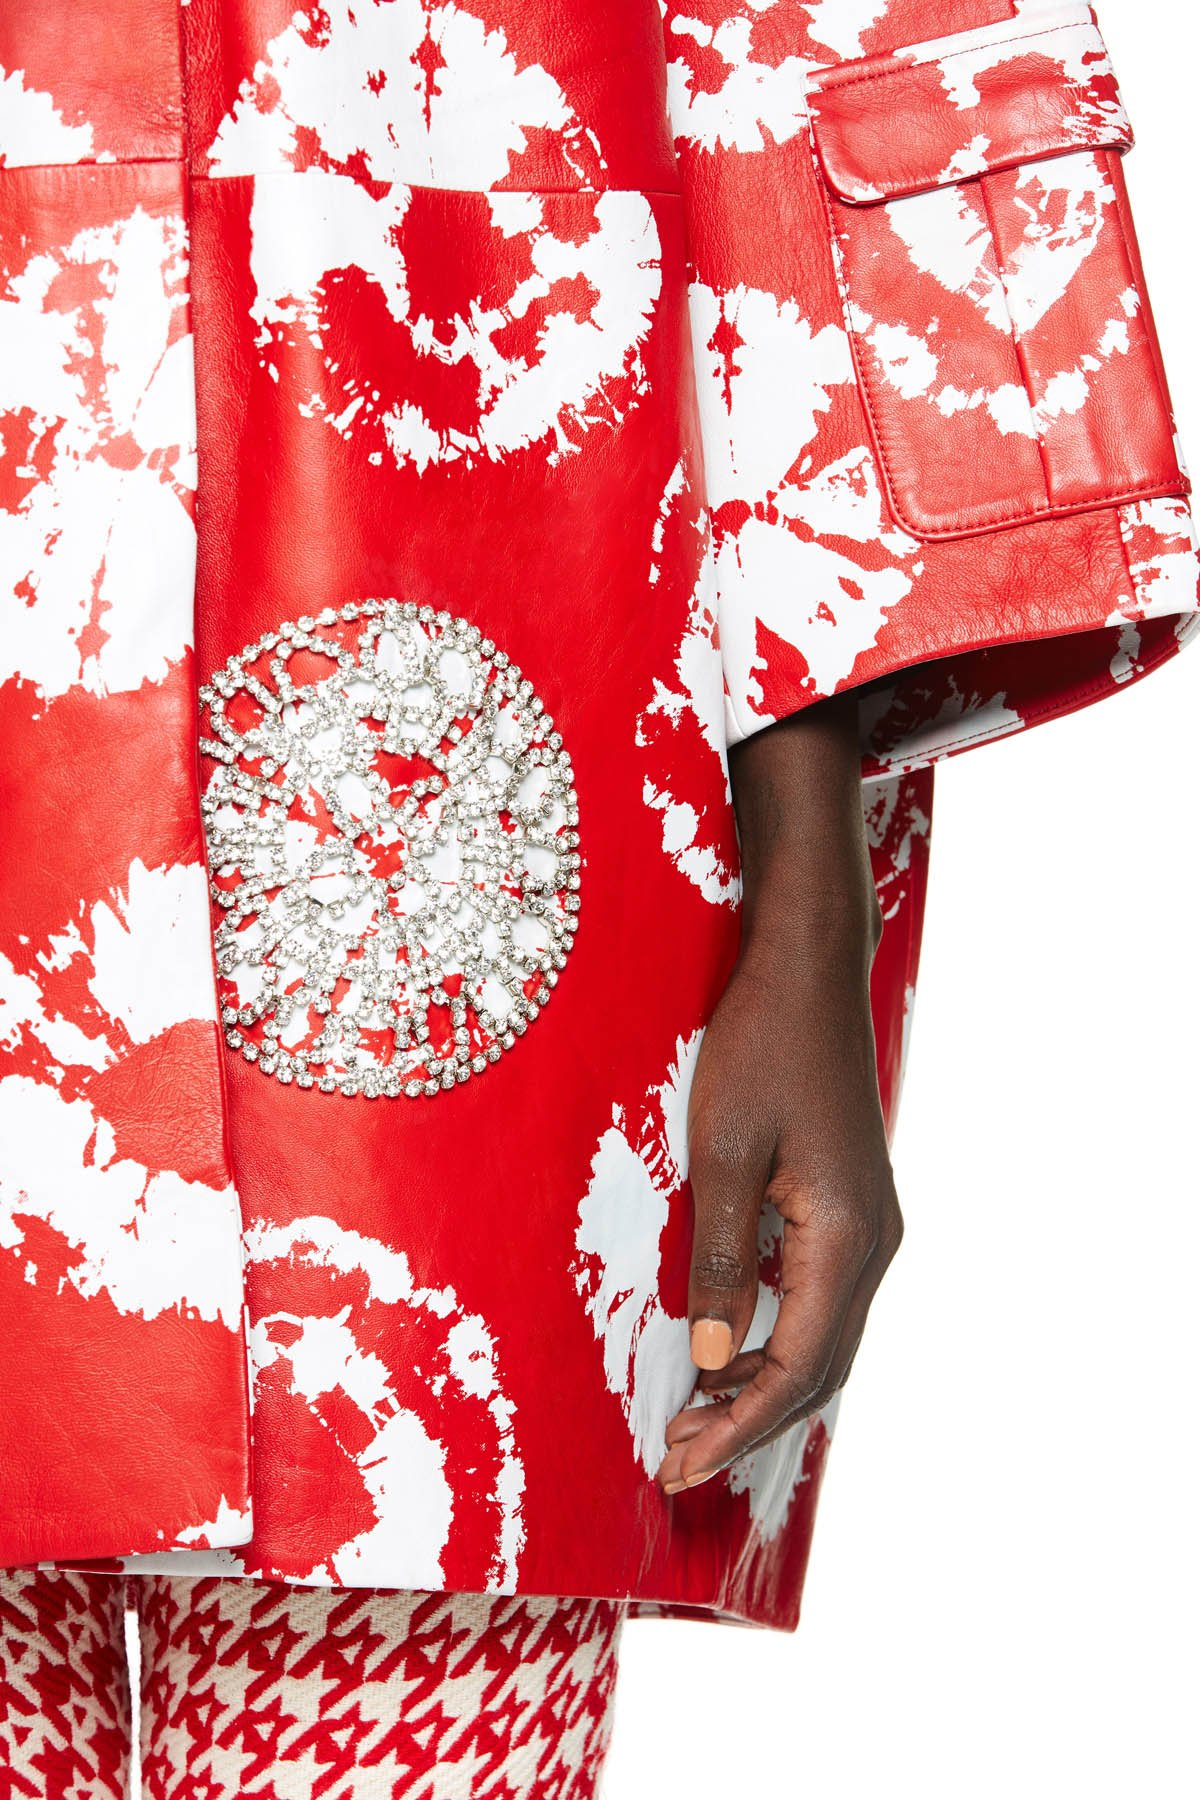 Cocoon-shaped jacket featuring clear crystal crochet detail on a shibori tie dye print. Available in red/white.